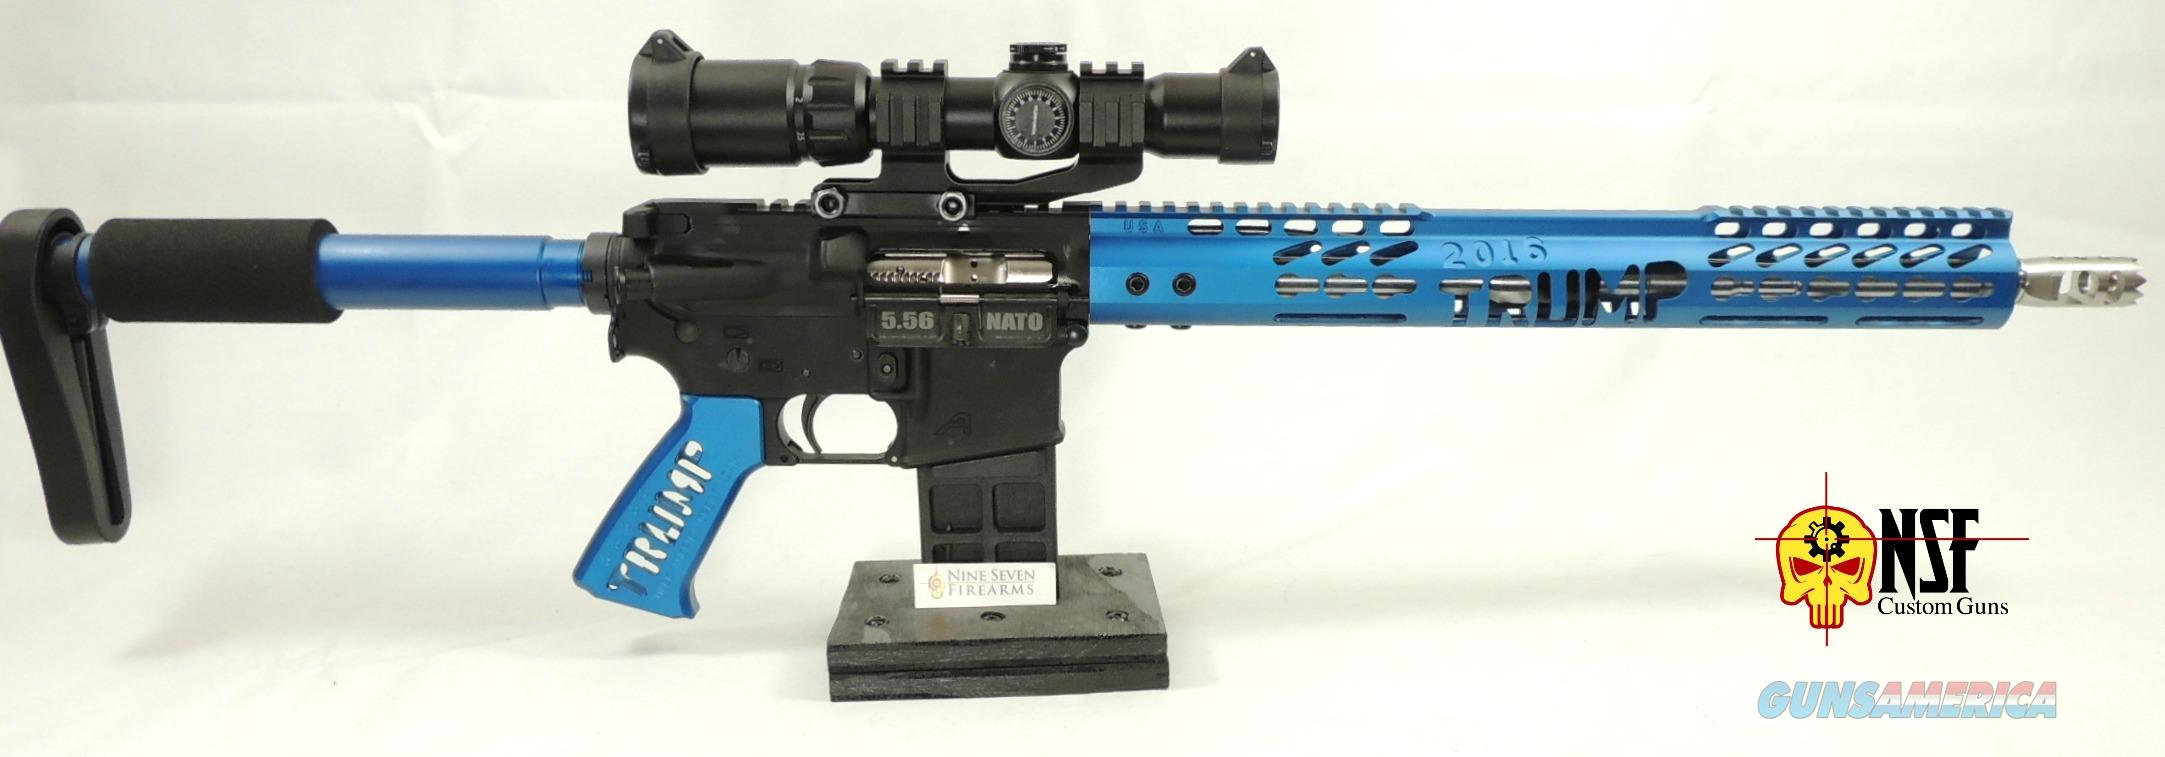 Trump AR-15, Anodized Blue, Nickel BCG, Stainless Barrel, 1-4 Scope, Aero Lower  Guns > Rifles > AR-15 Rifles - Small Manufacturers > Complete Rifle